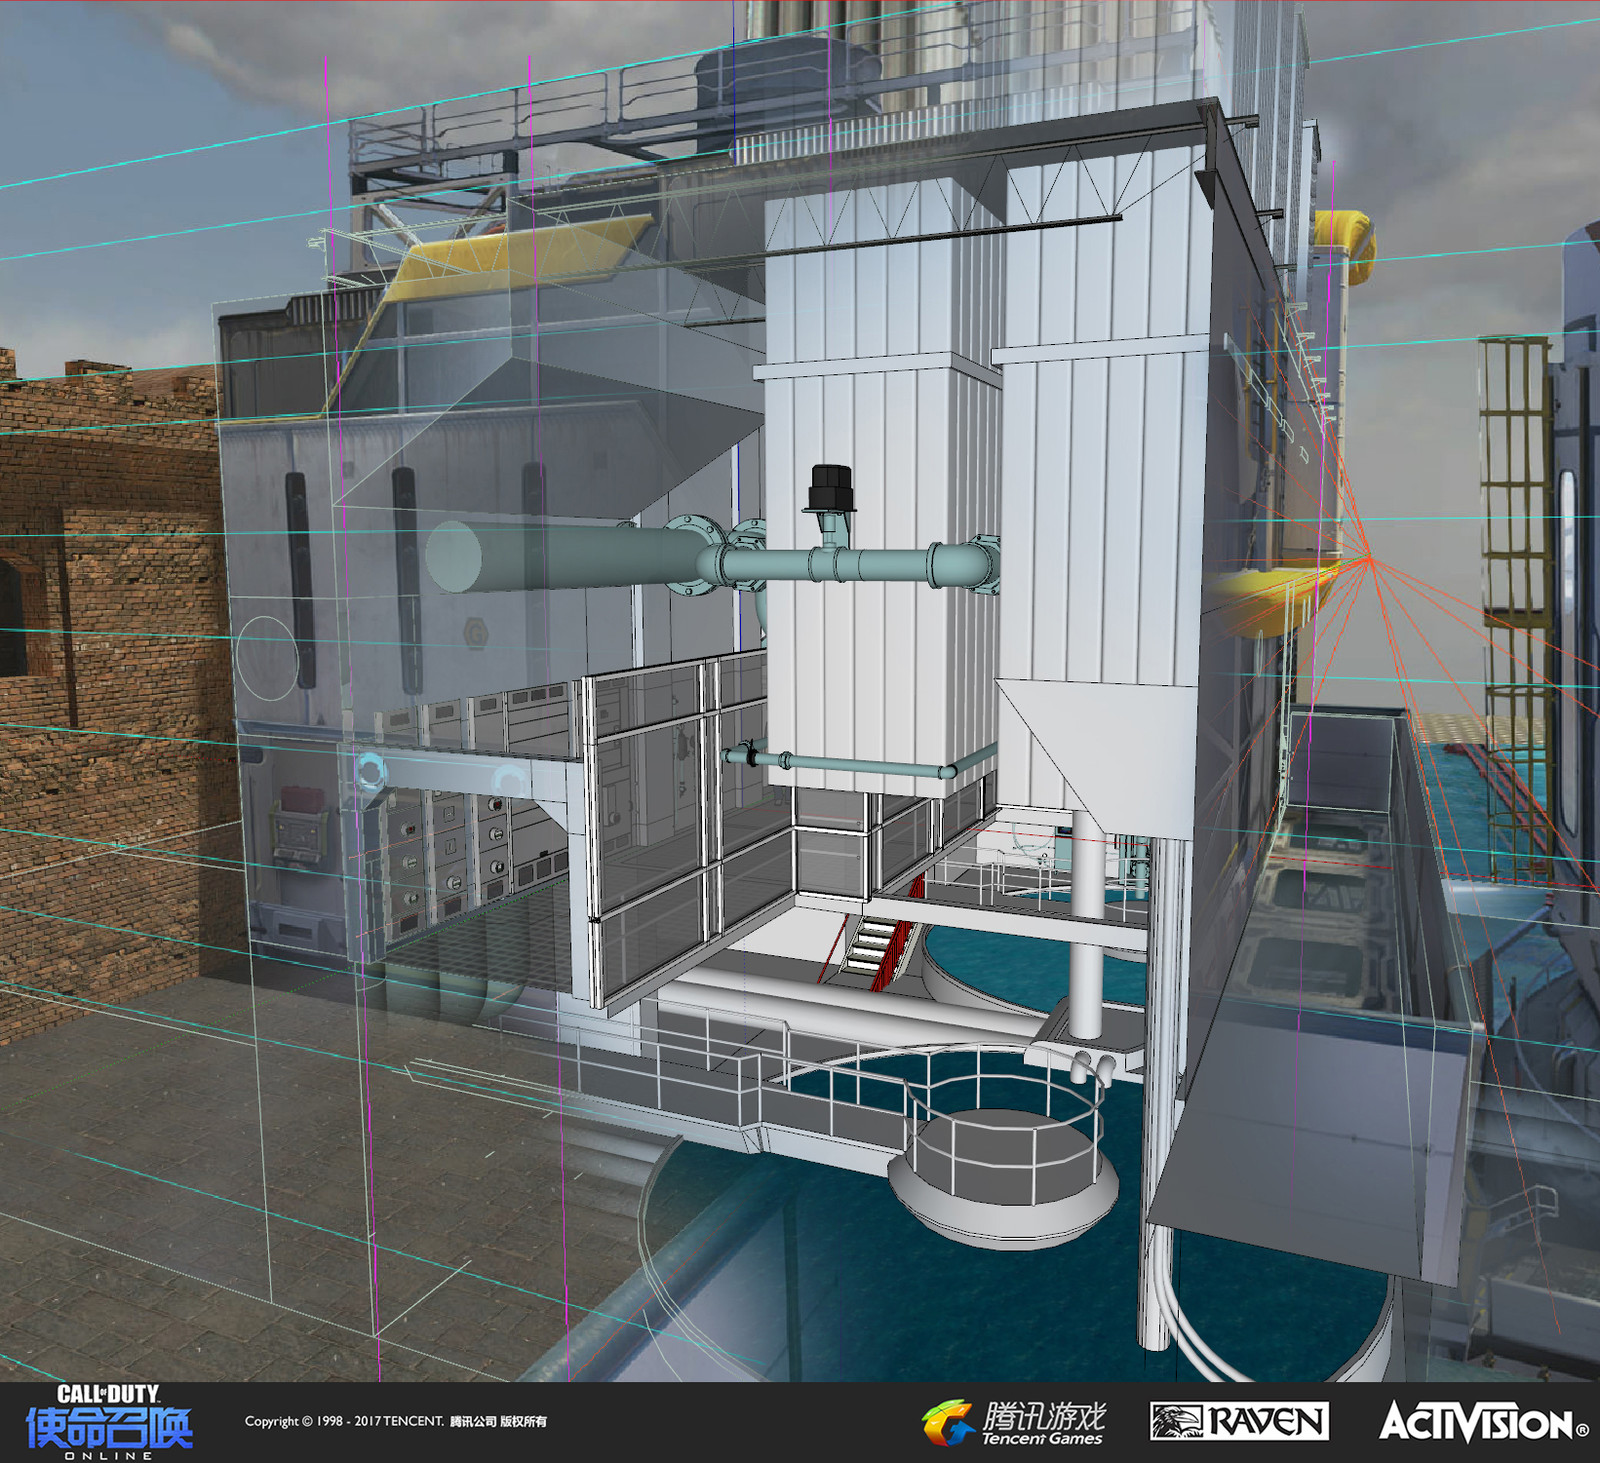 For the interior concept of the water filtration building, I used SketchUp to deal with tight and narrow interior space.